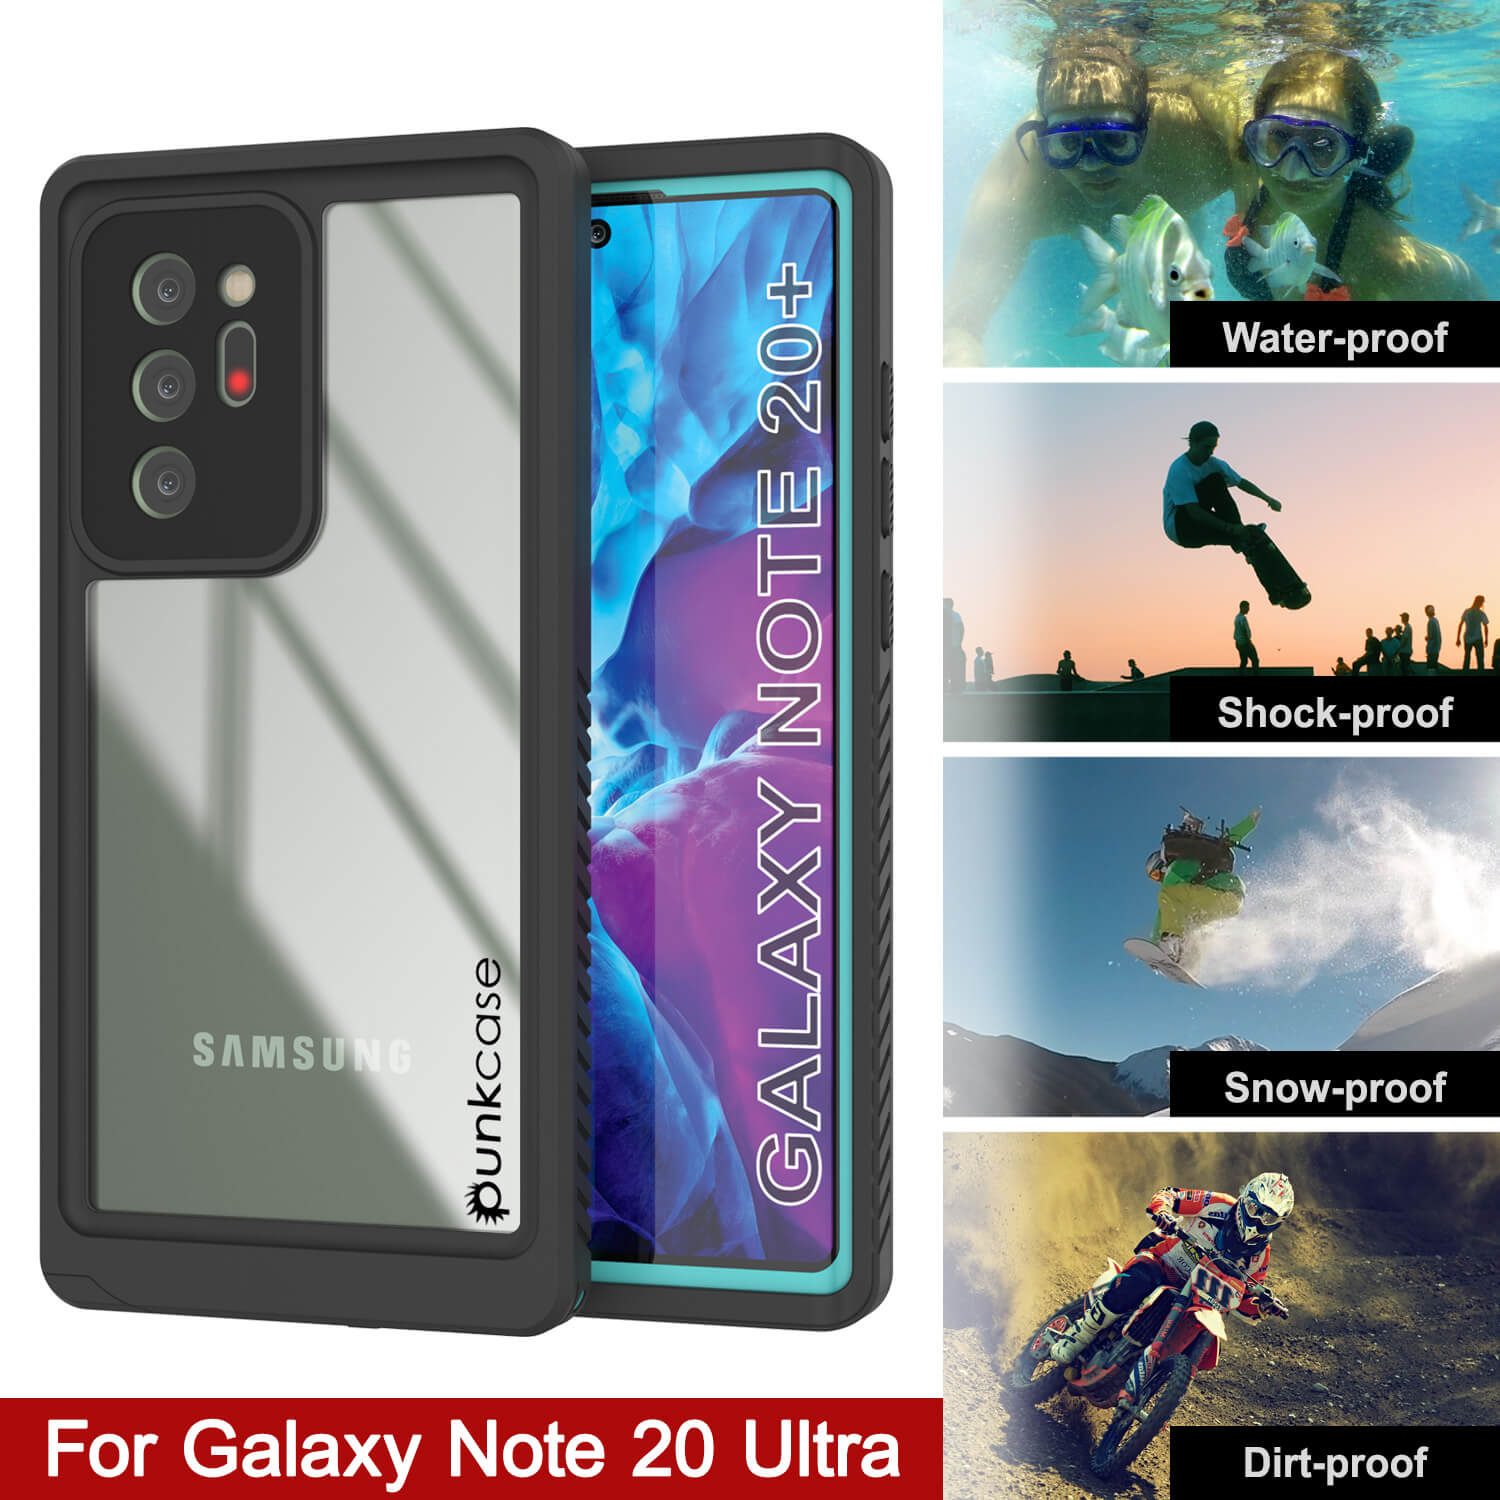 Galaxy Note 20 Ultra Case, Punkcase [Extreme Series] Armor Cover W/ Built In Screen Protector [Teal]